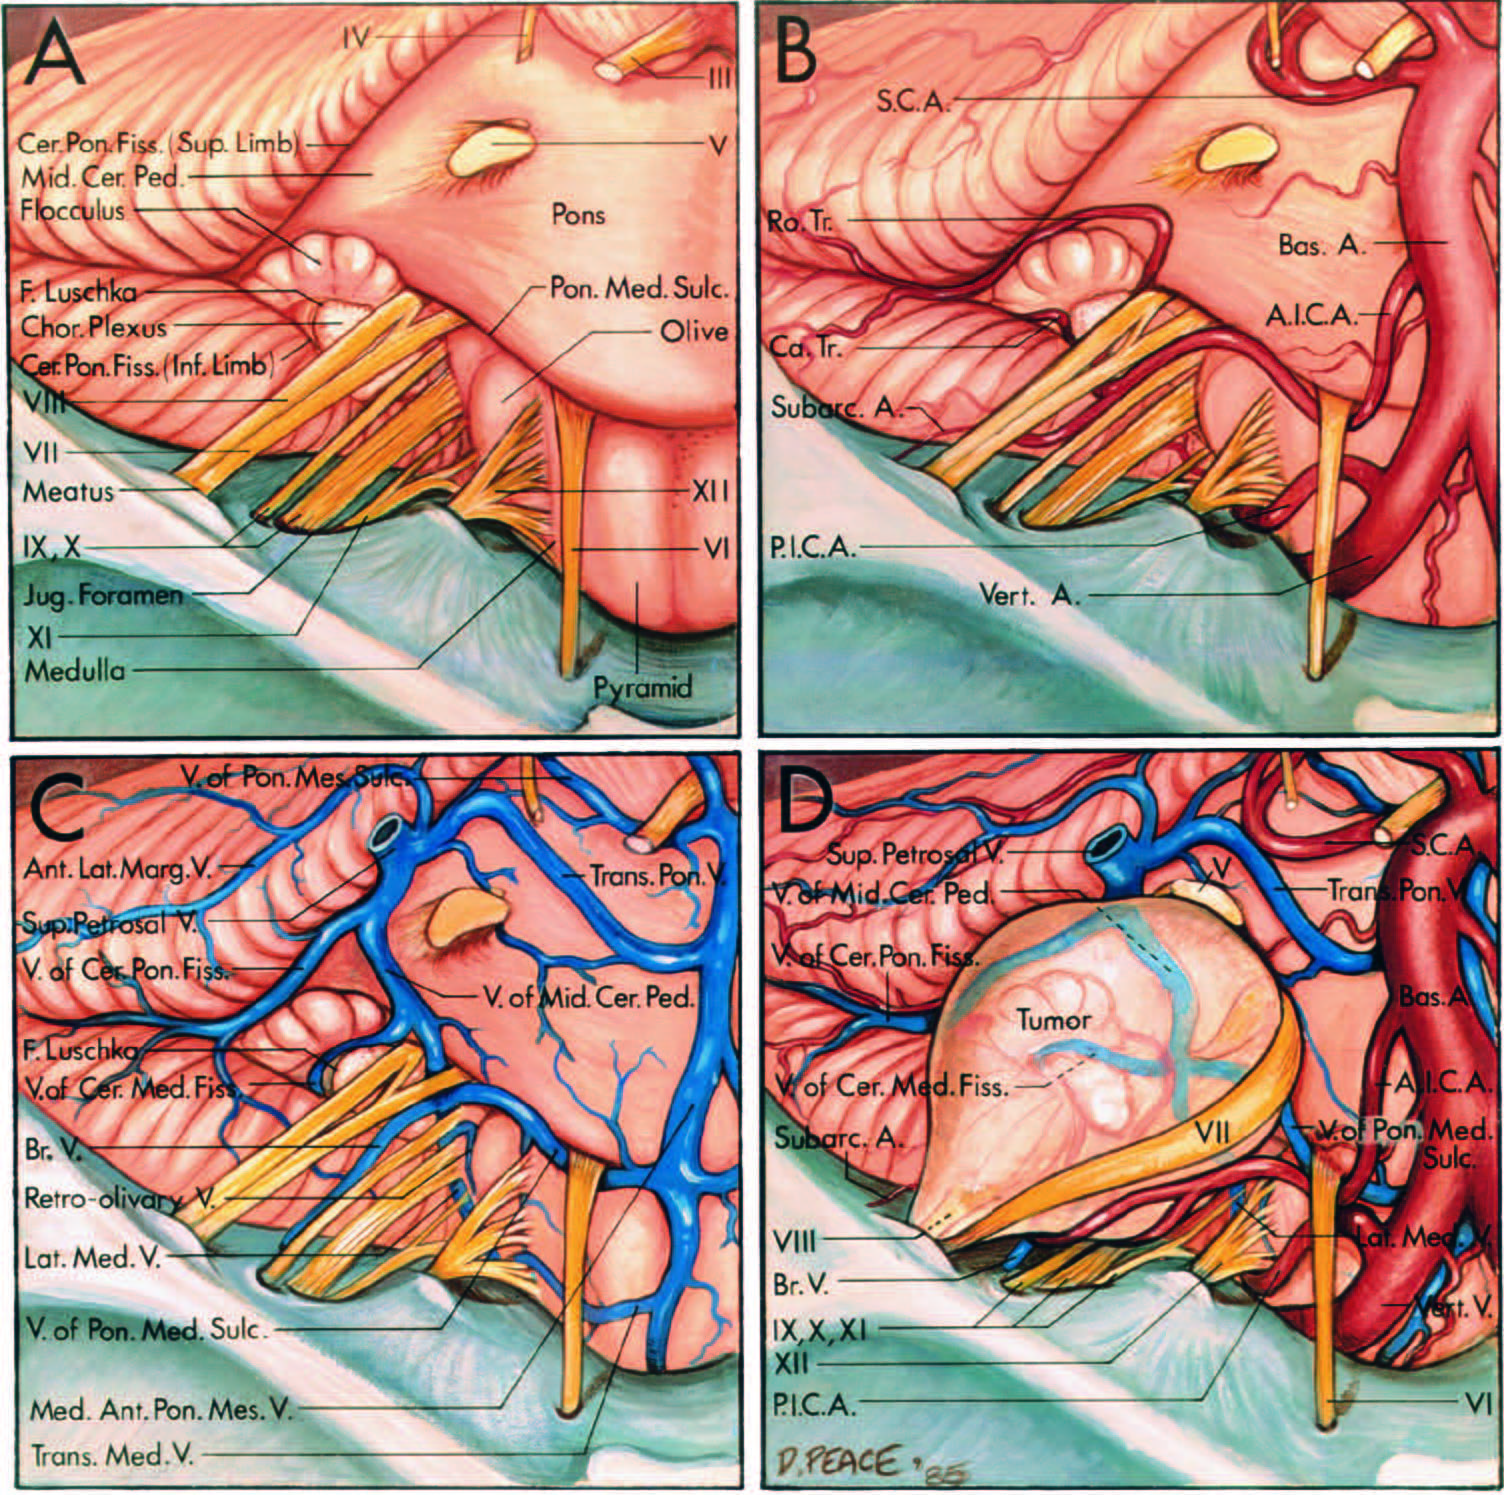 FIGURE 4.22. Neurovascular relationships on the brainstem side of an